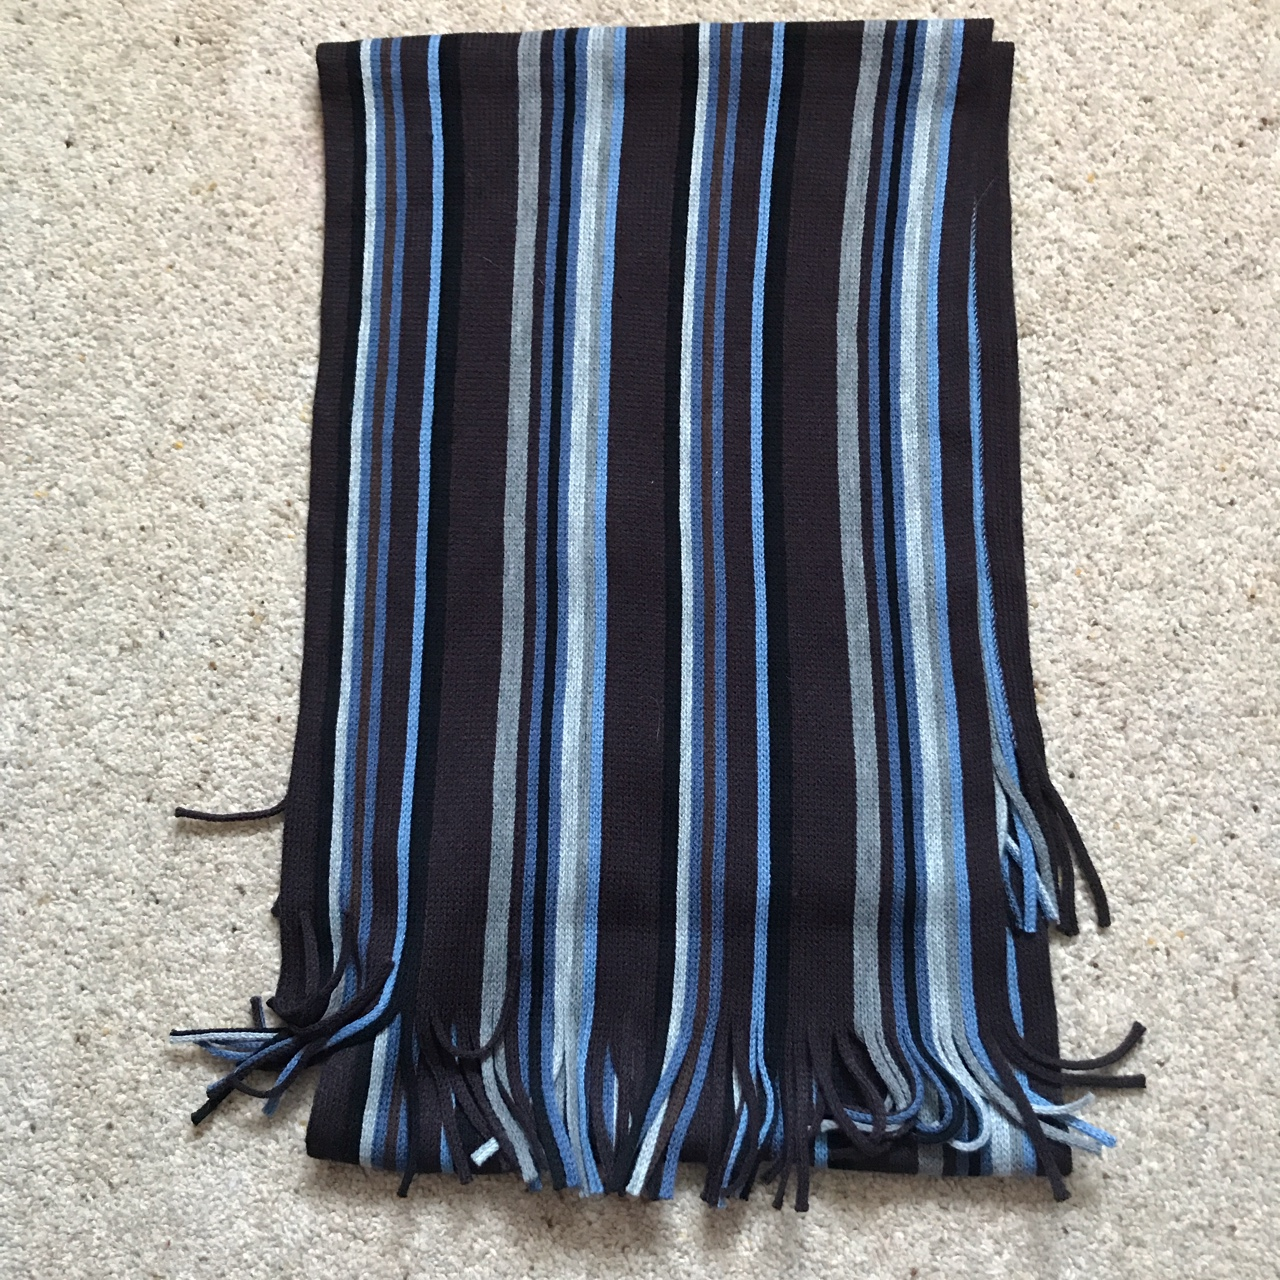 Brand New Austin Reed Men S Scarf Striped Black Depop